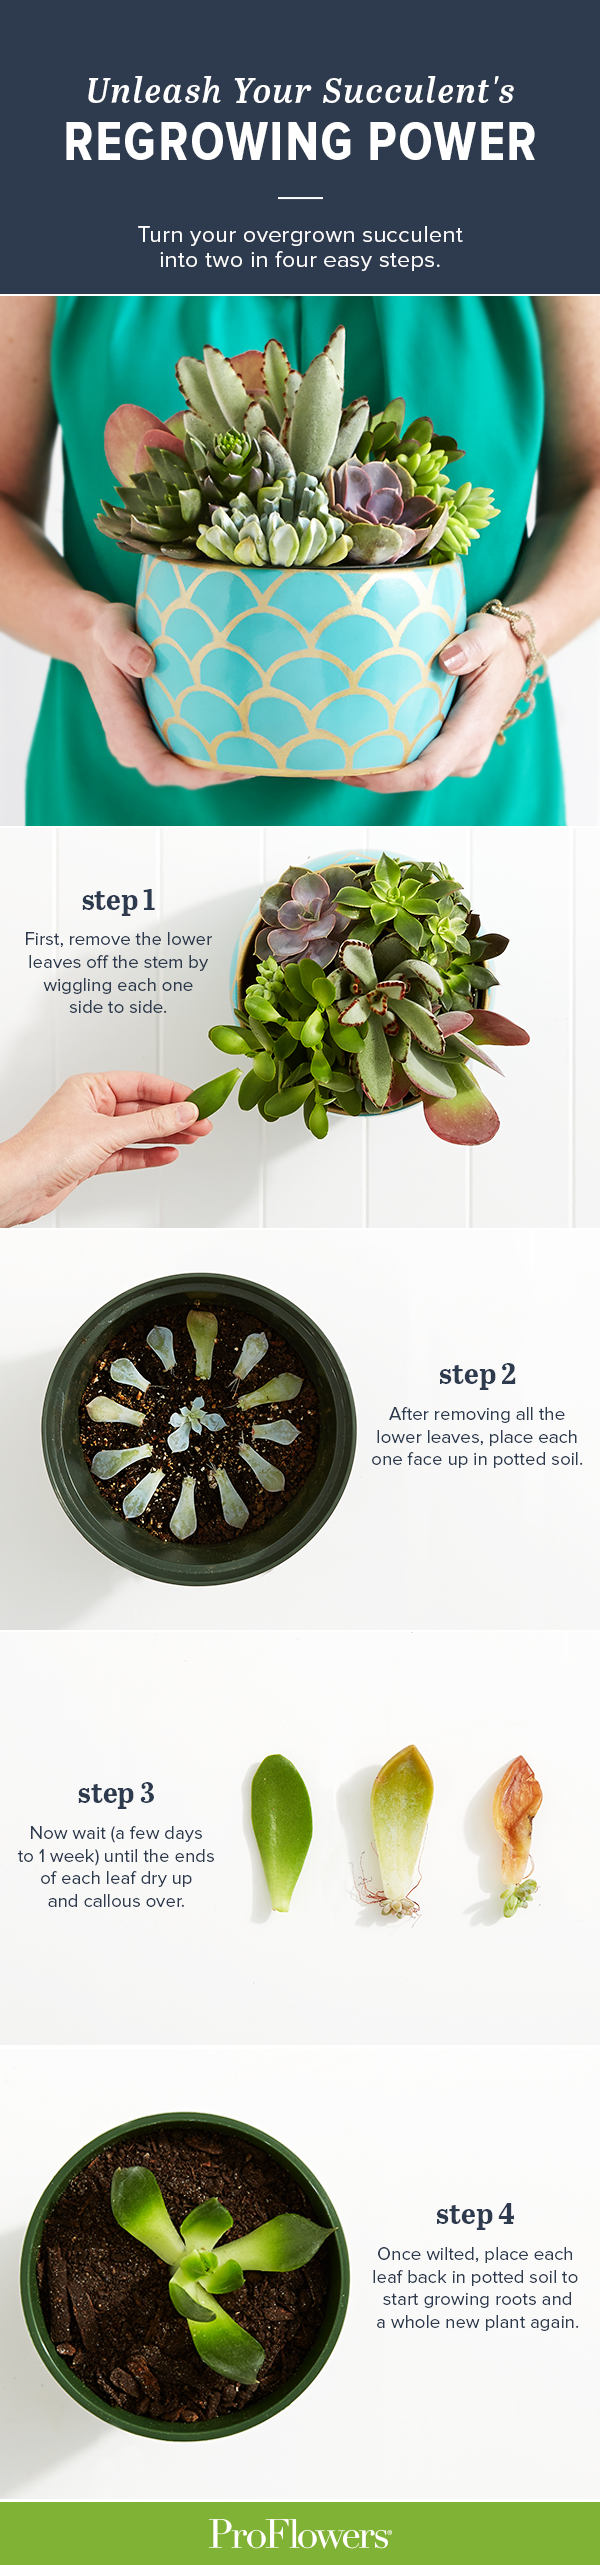 Have a succulent that's overgrowing its container? There's no need to kill or ditch the